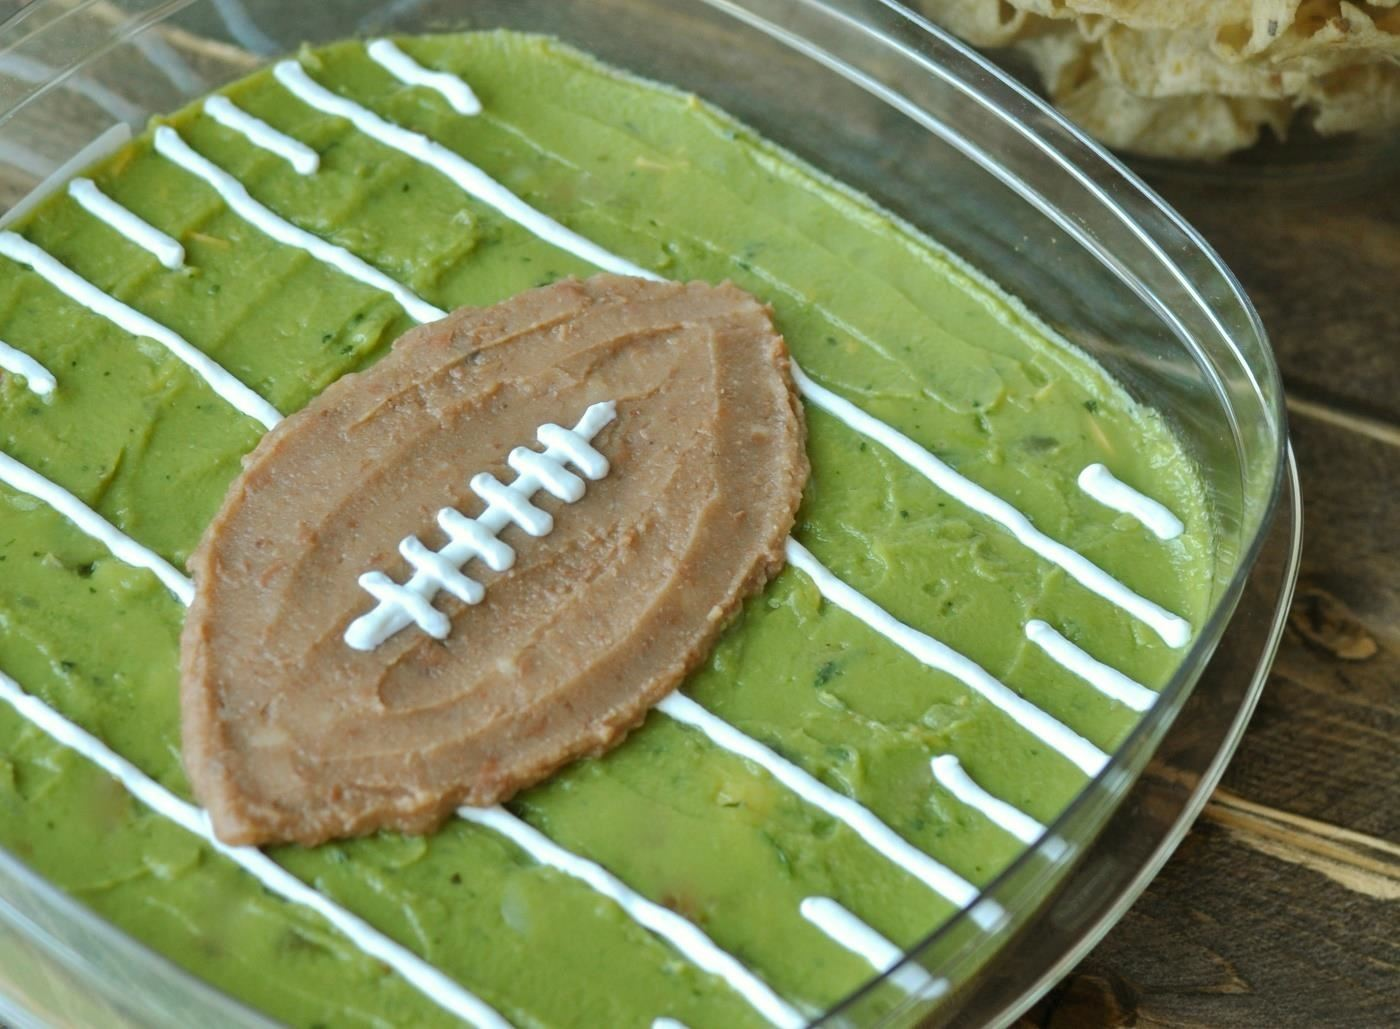 5-Minute Super Bowl Snacks for the Win